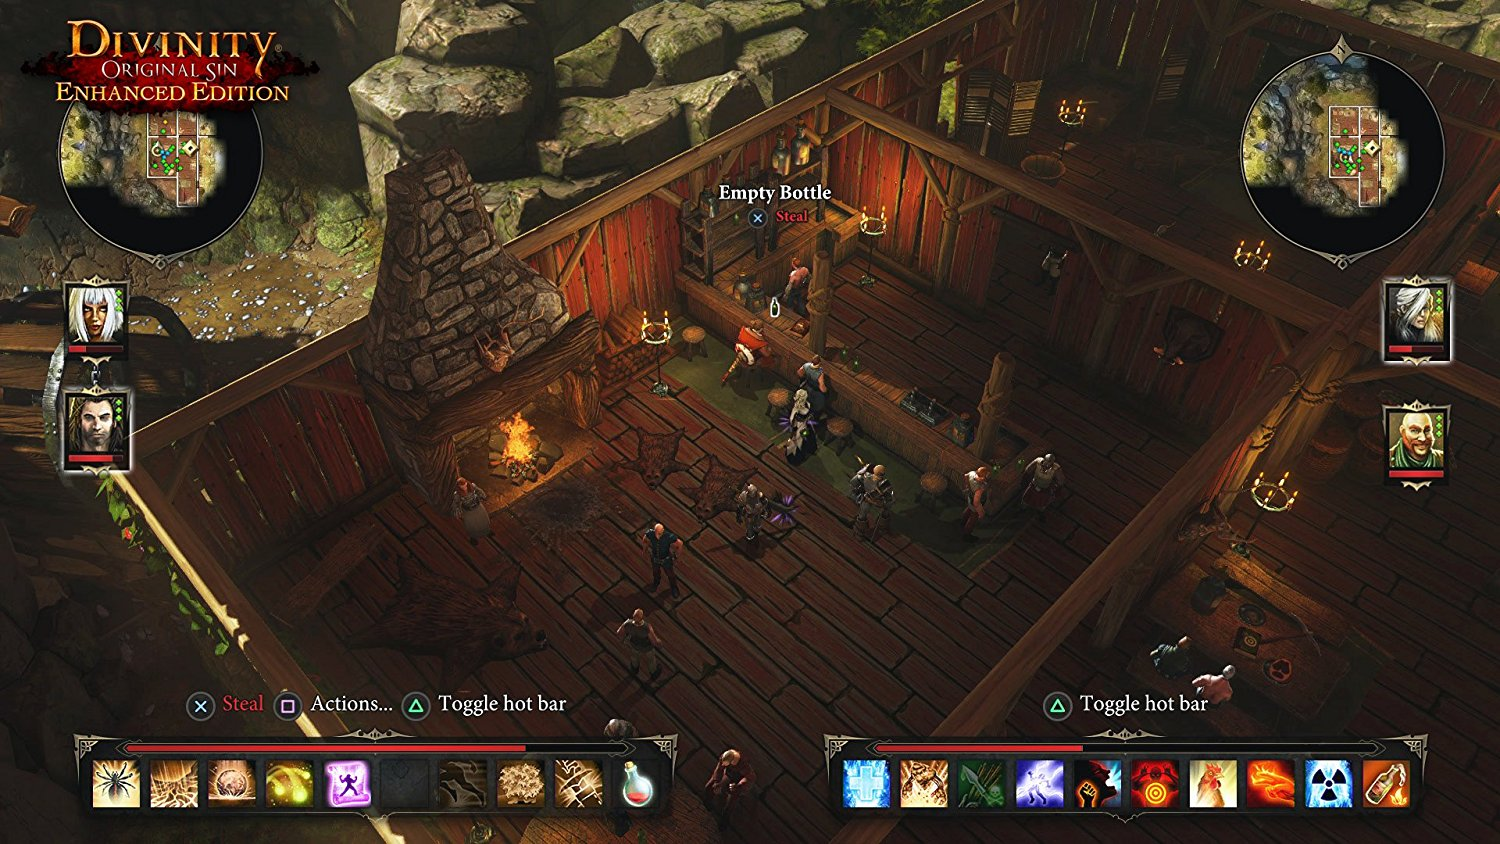 Скриншот к игре Divinity: Original Sin - Enhanced Edition [v 2.0.119.430] (2015) PC | RePack от R.G. Механики